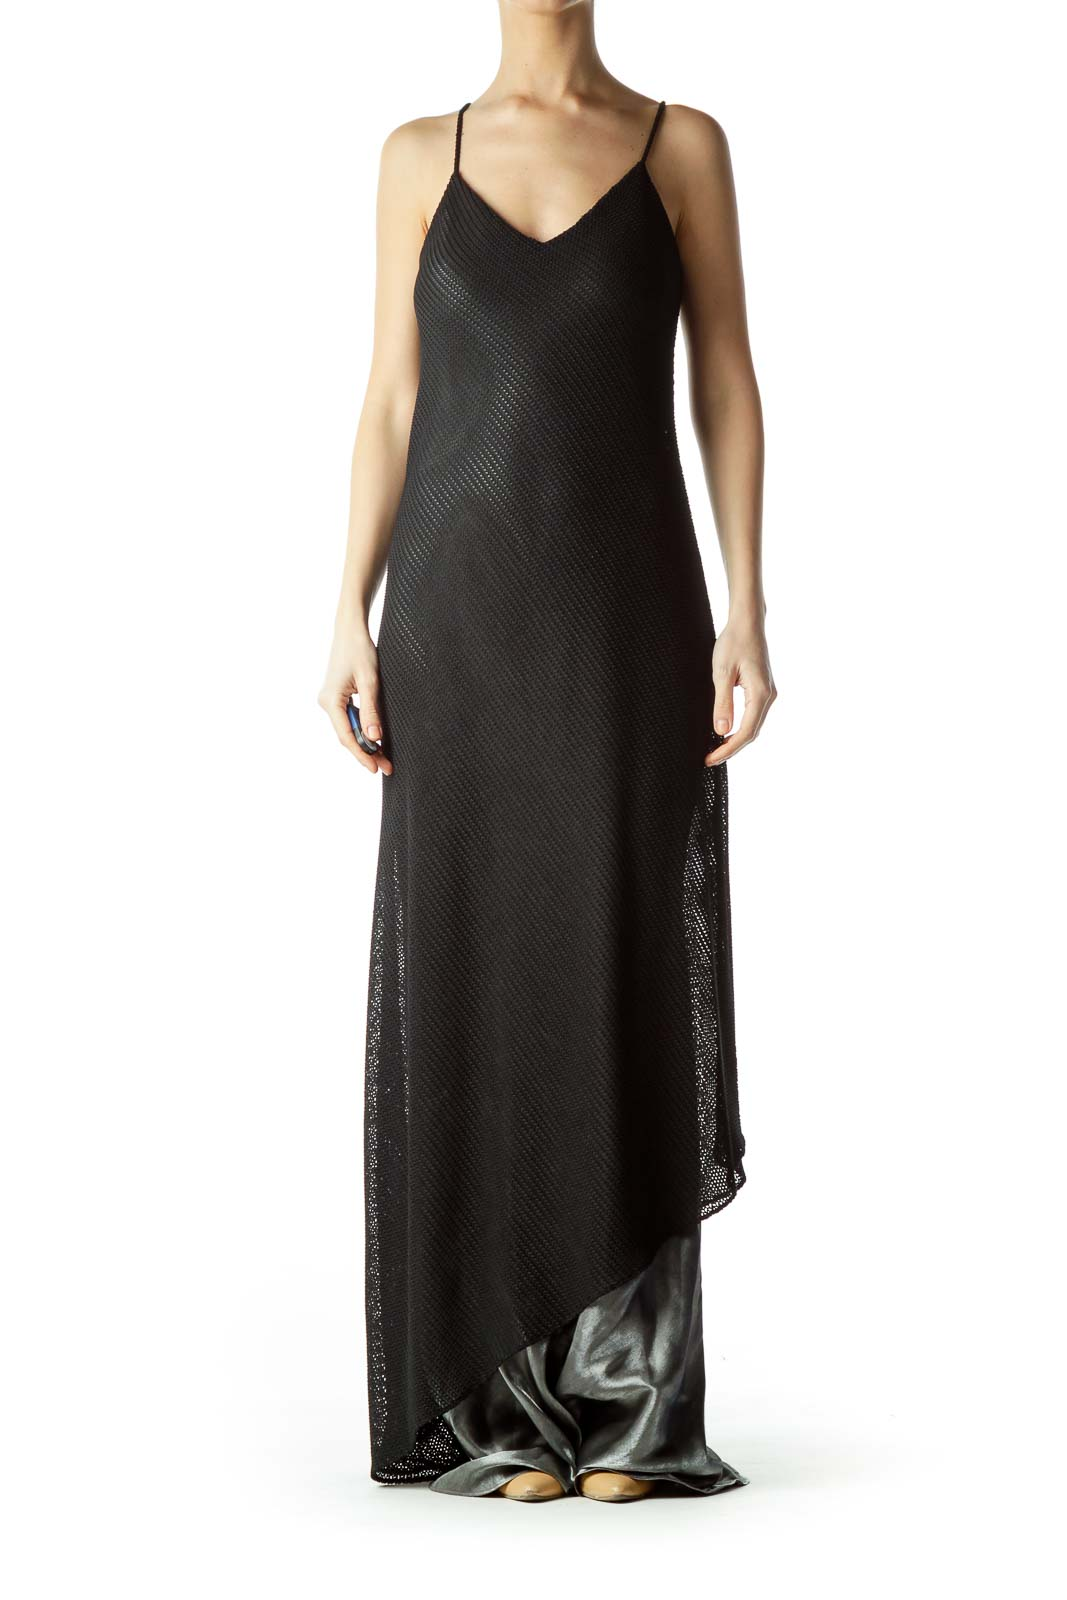 Black Cable Knit Spaghetti Strap Maxi Dress Front